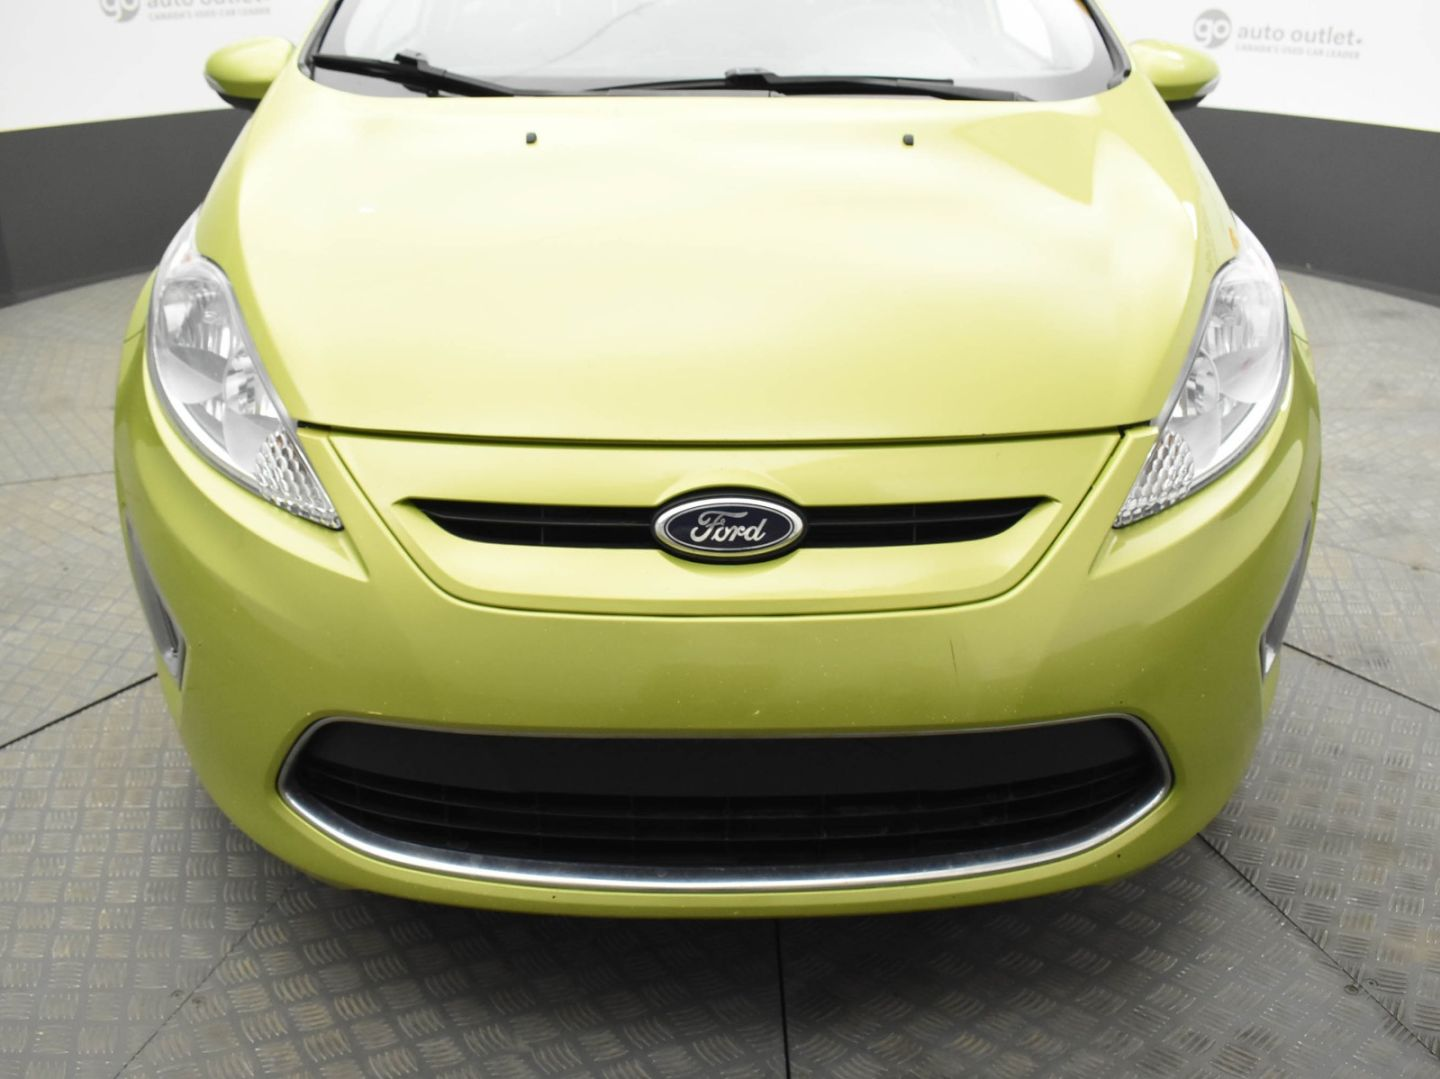 2012 Ford Fiesta SES for sale in ,